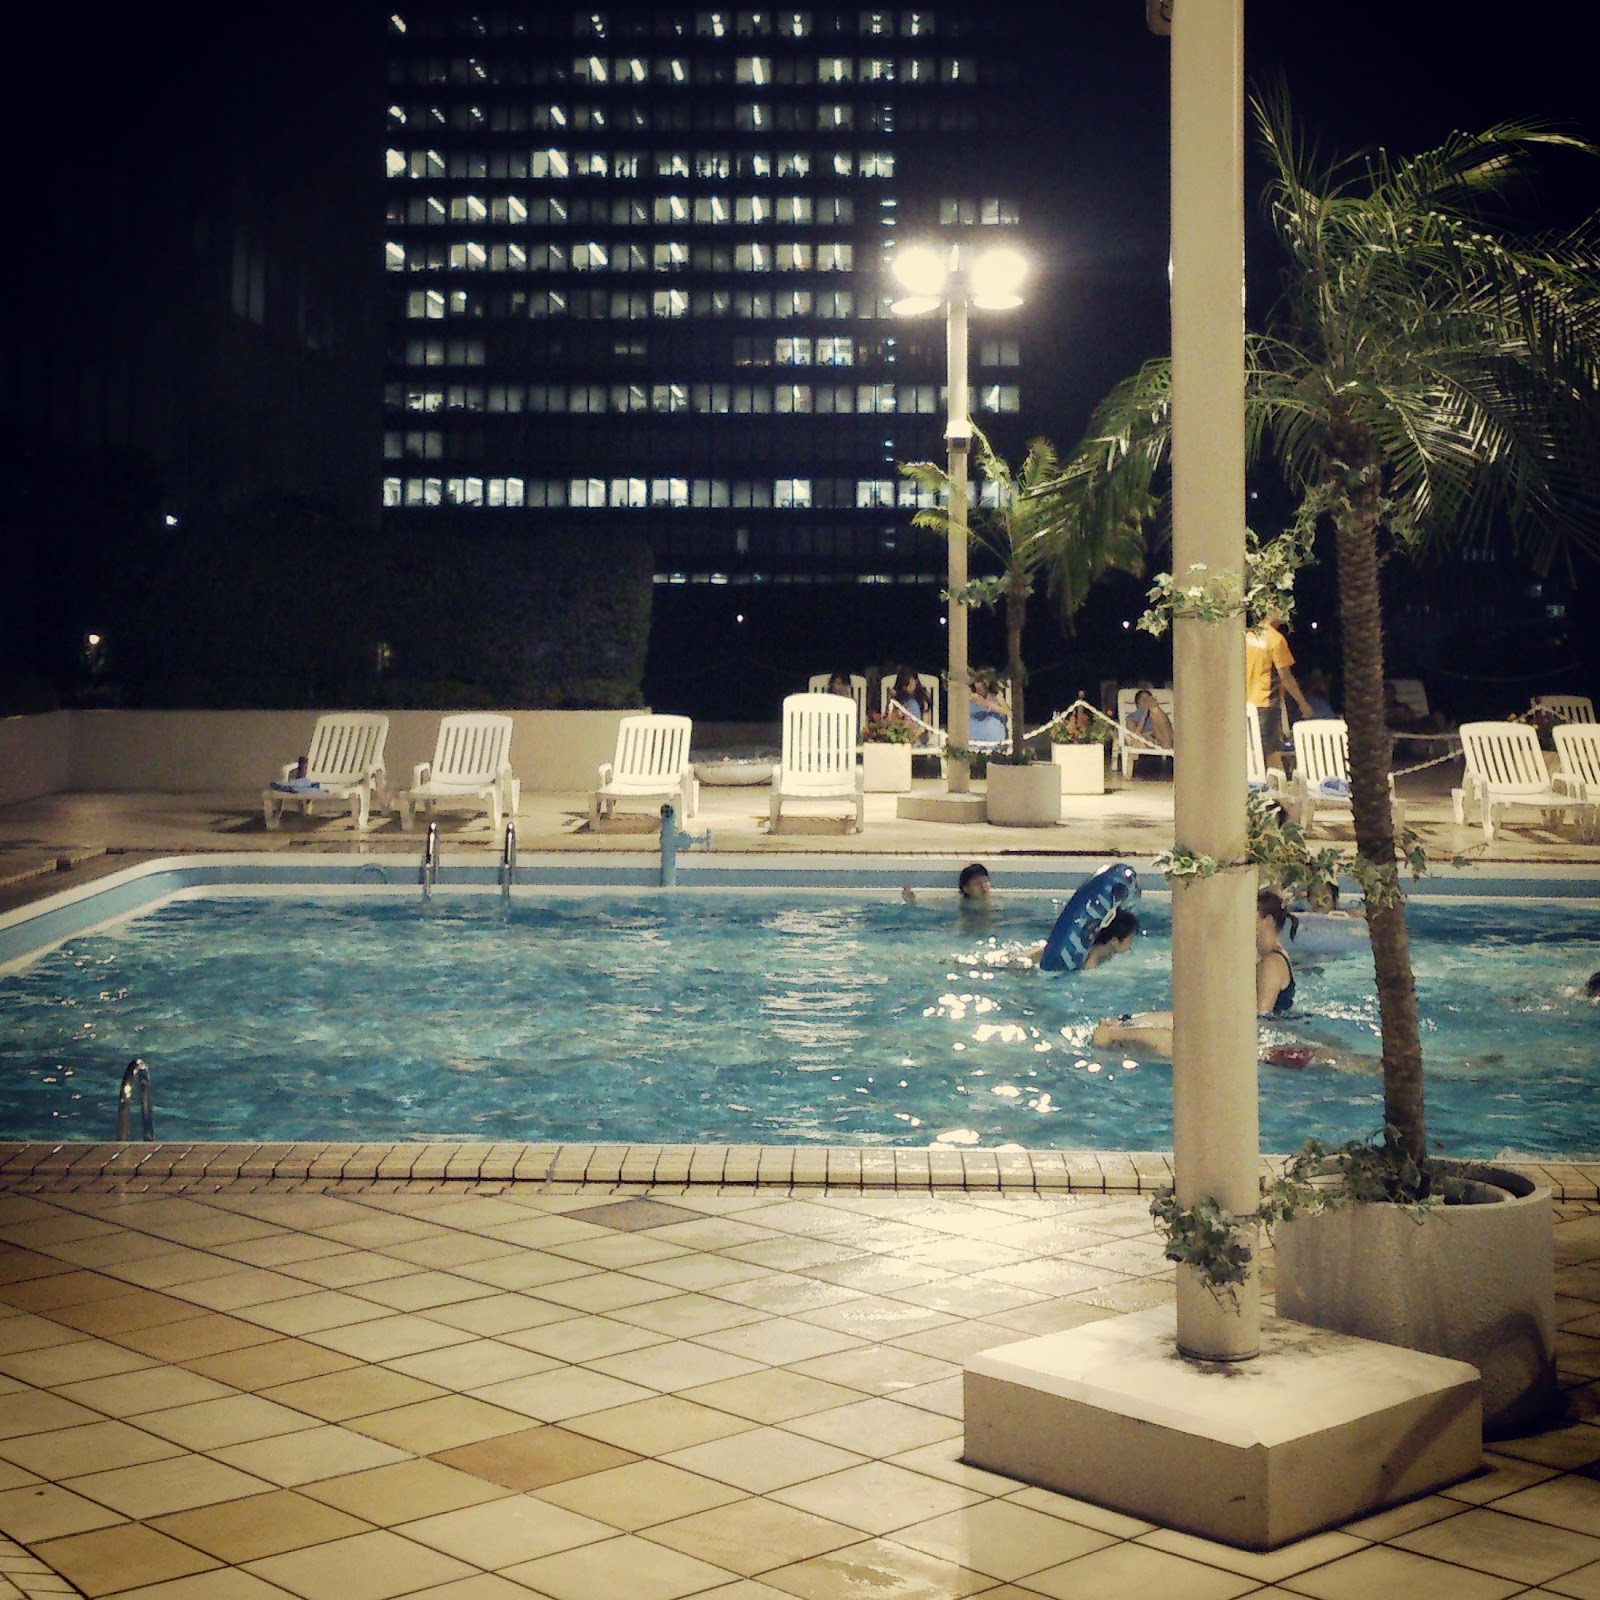 Kaori square feet the pool day after work for Average square footage of a pool